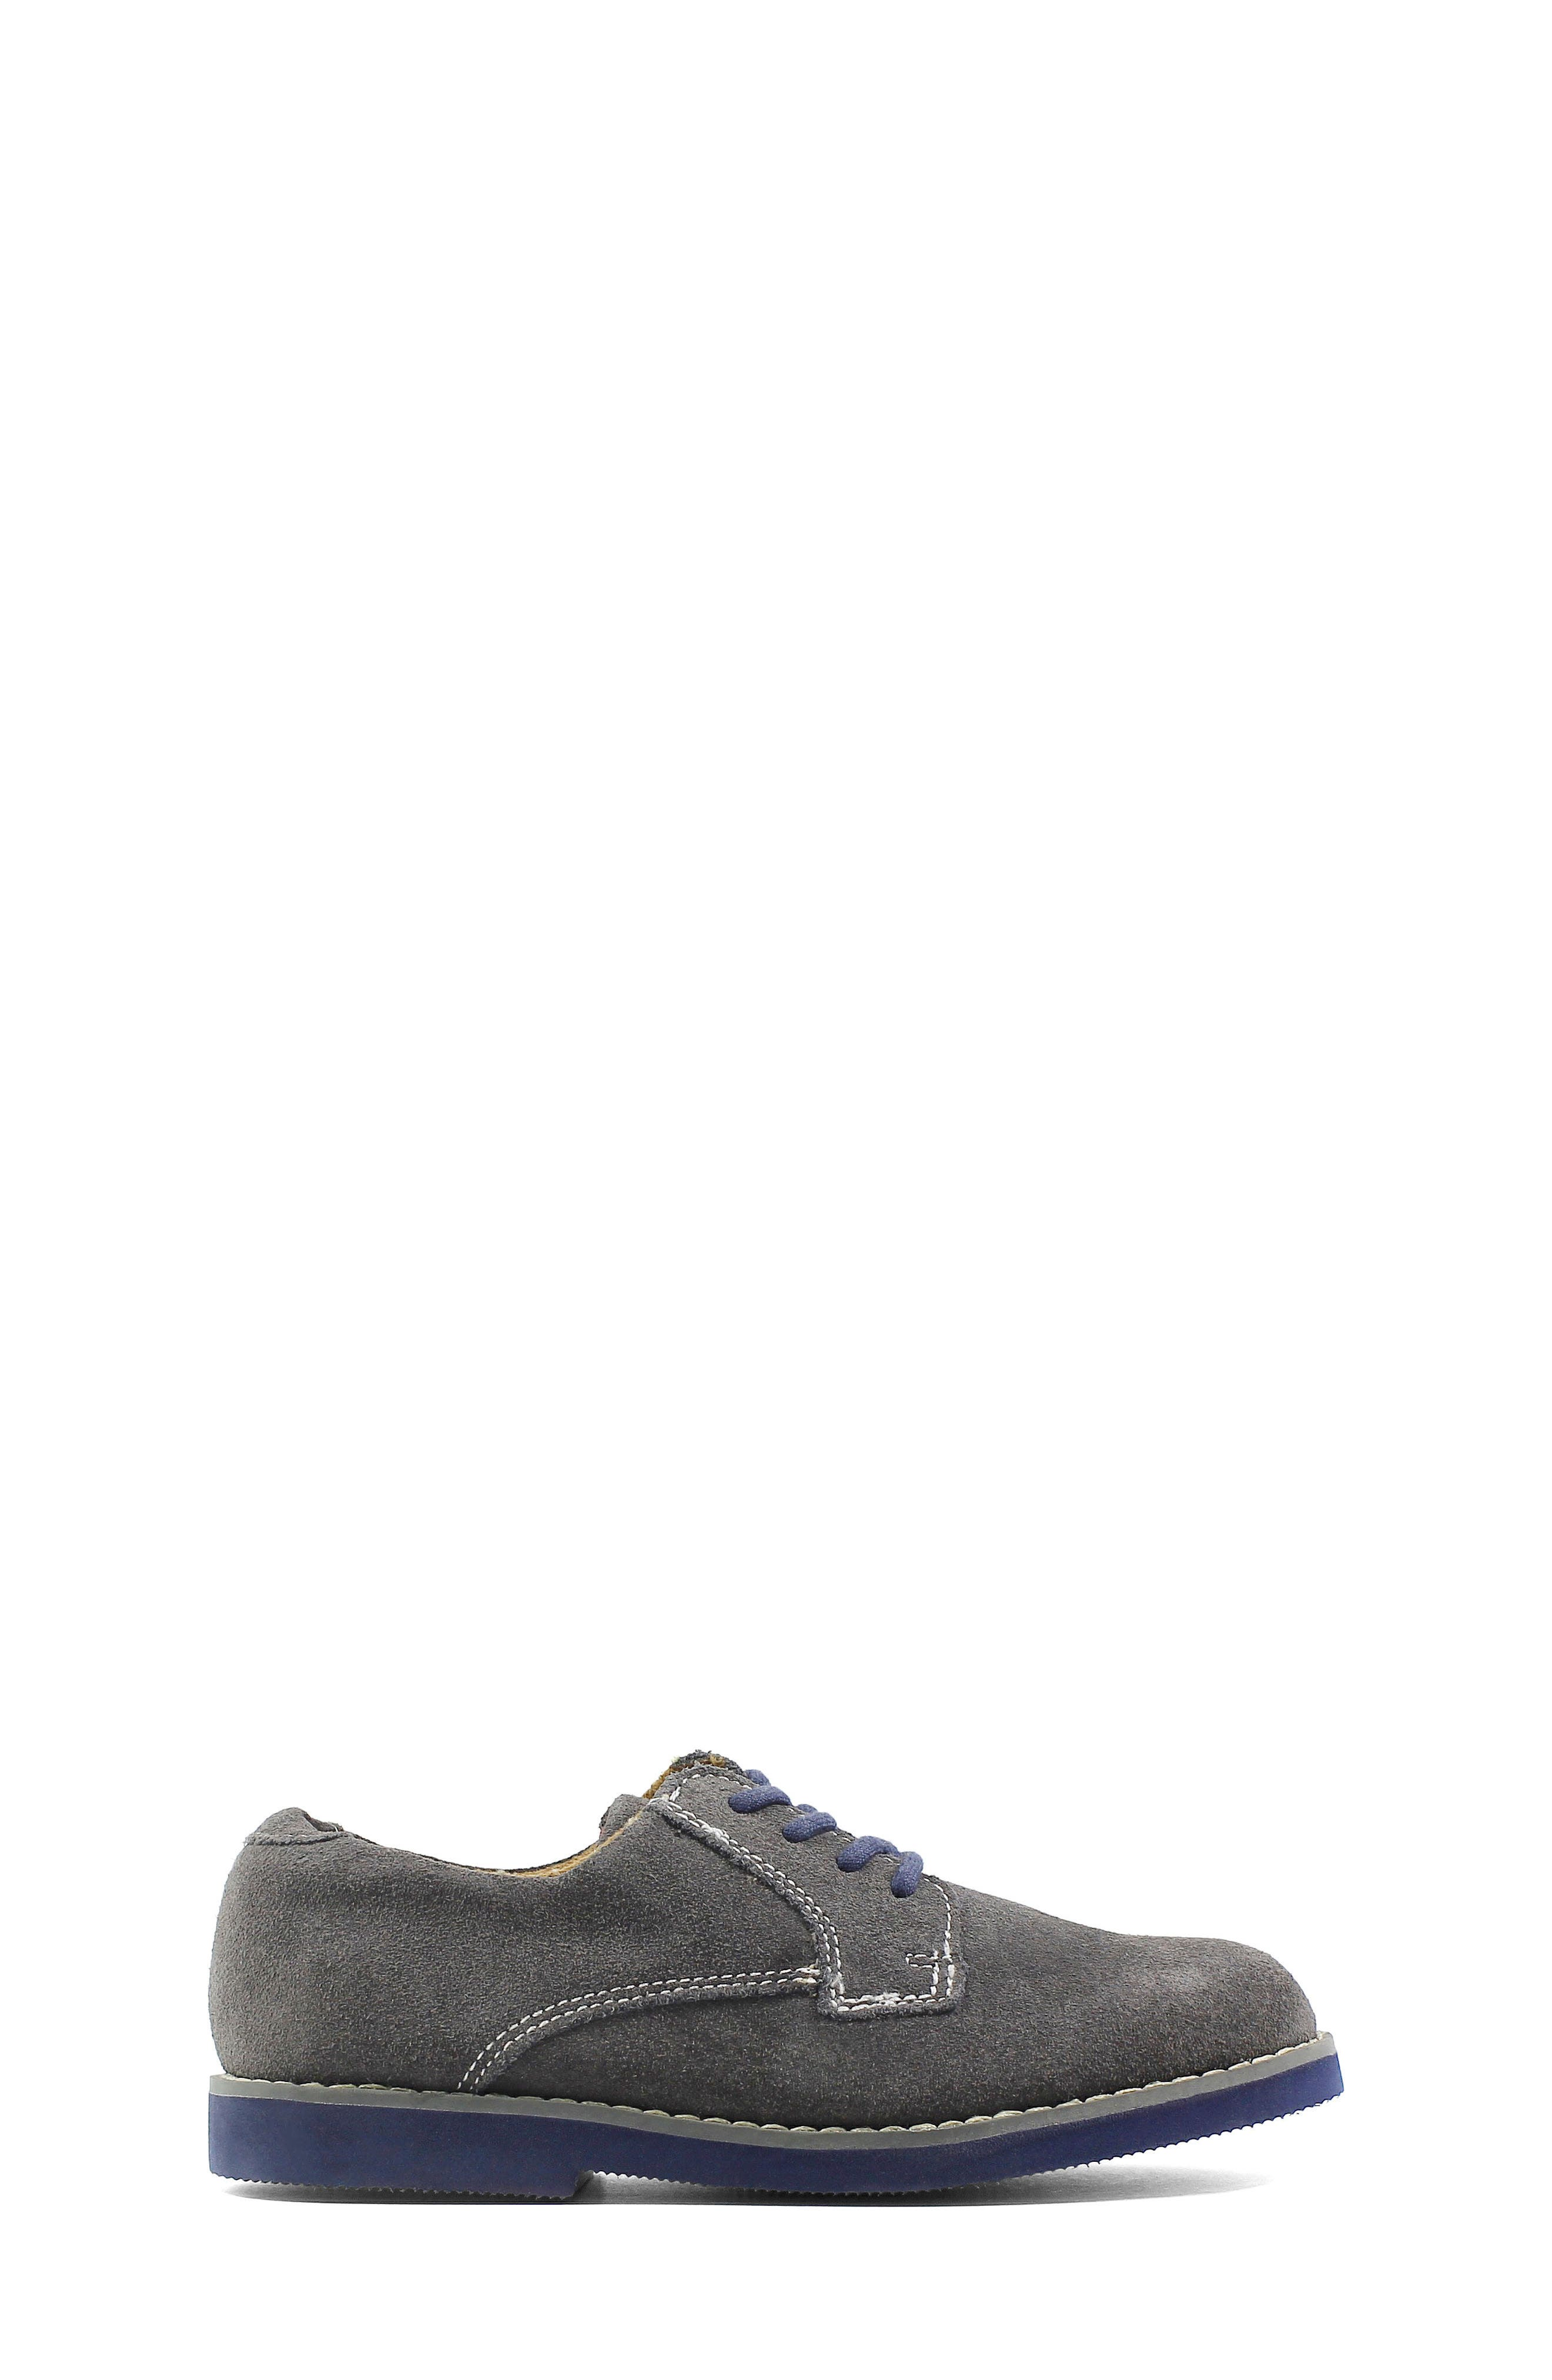 Kearny Two Tone Oxford,                             Alternate thumbnail 4, color,                             GREY/ NAVY SOLE